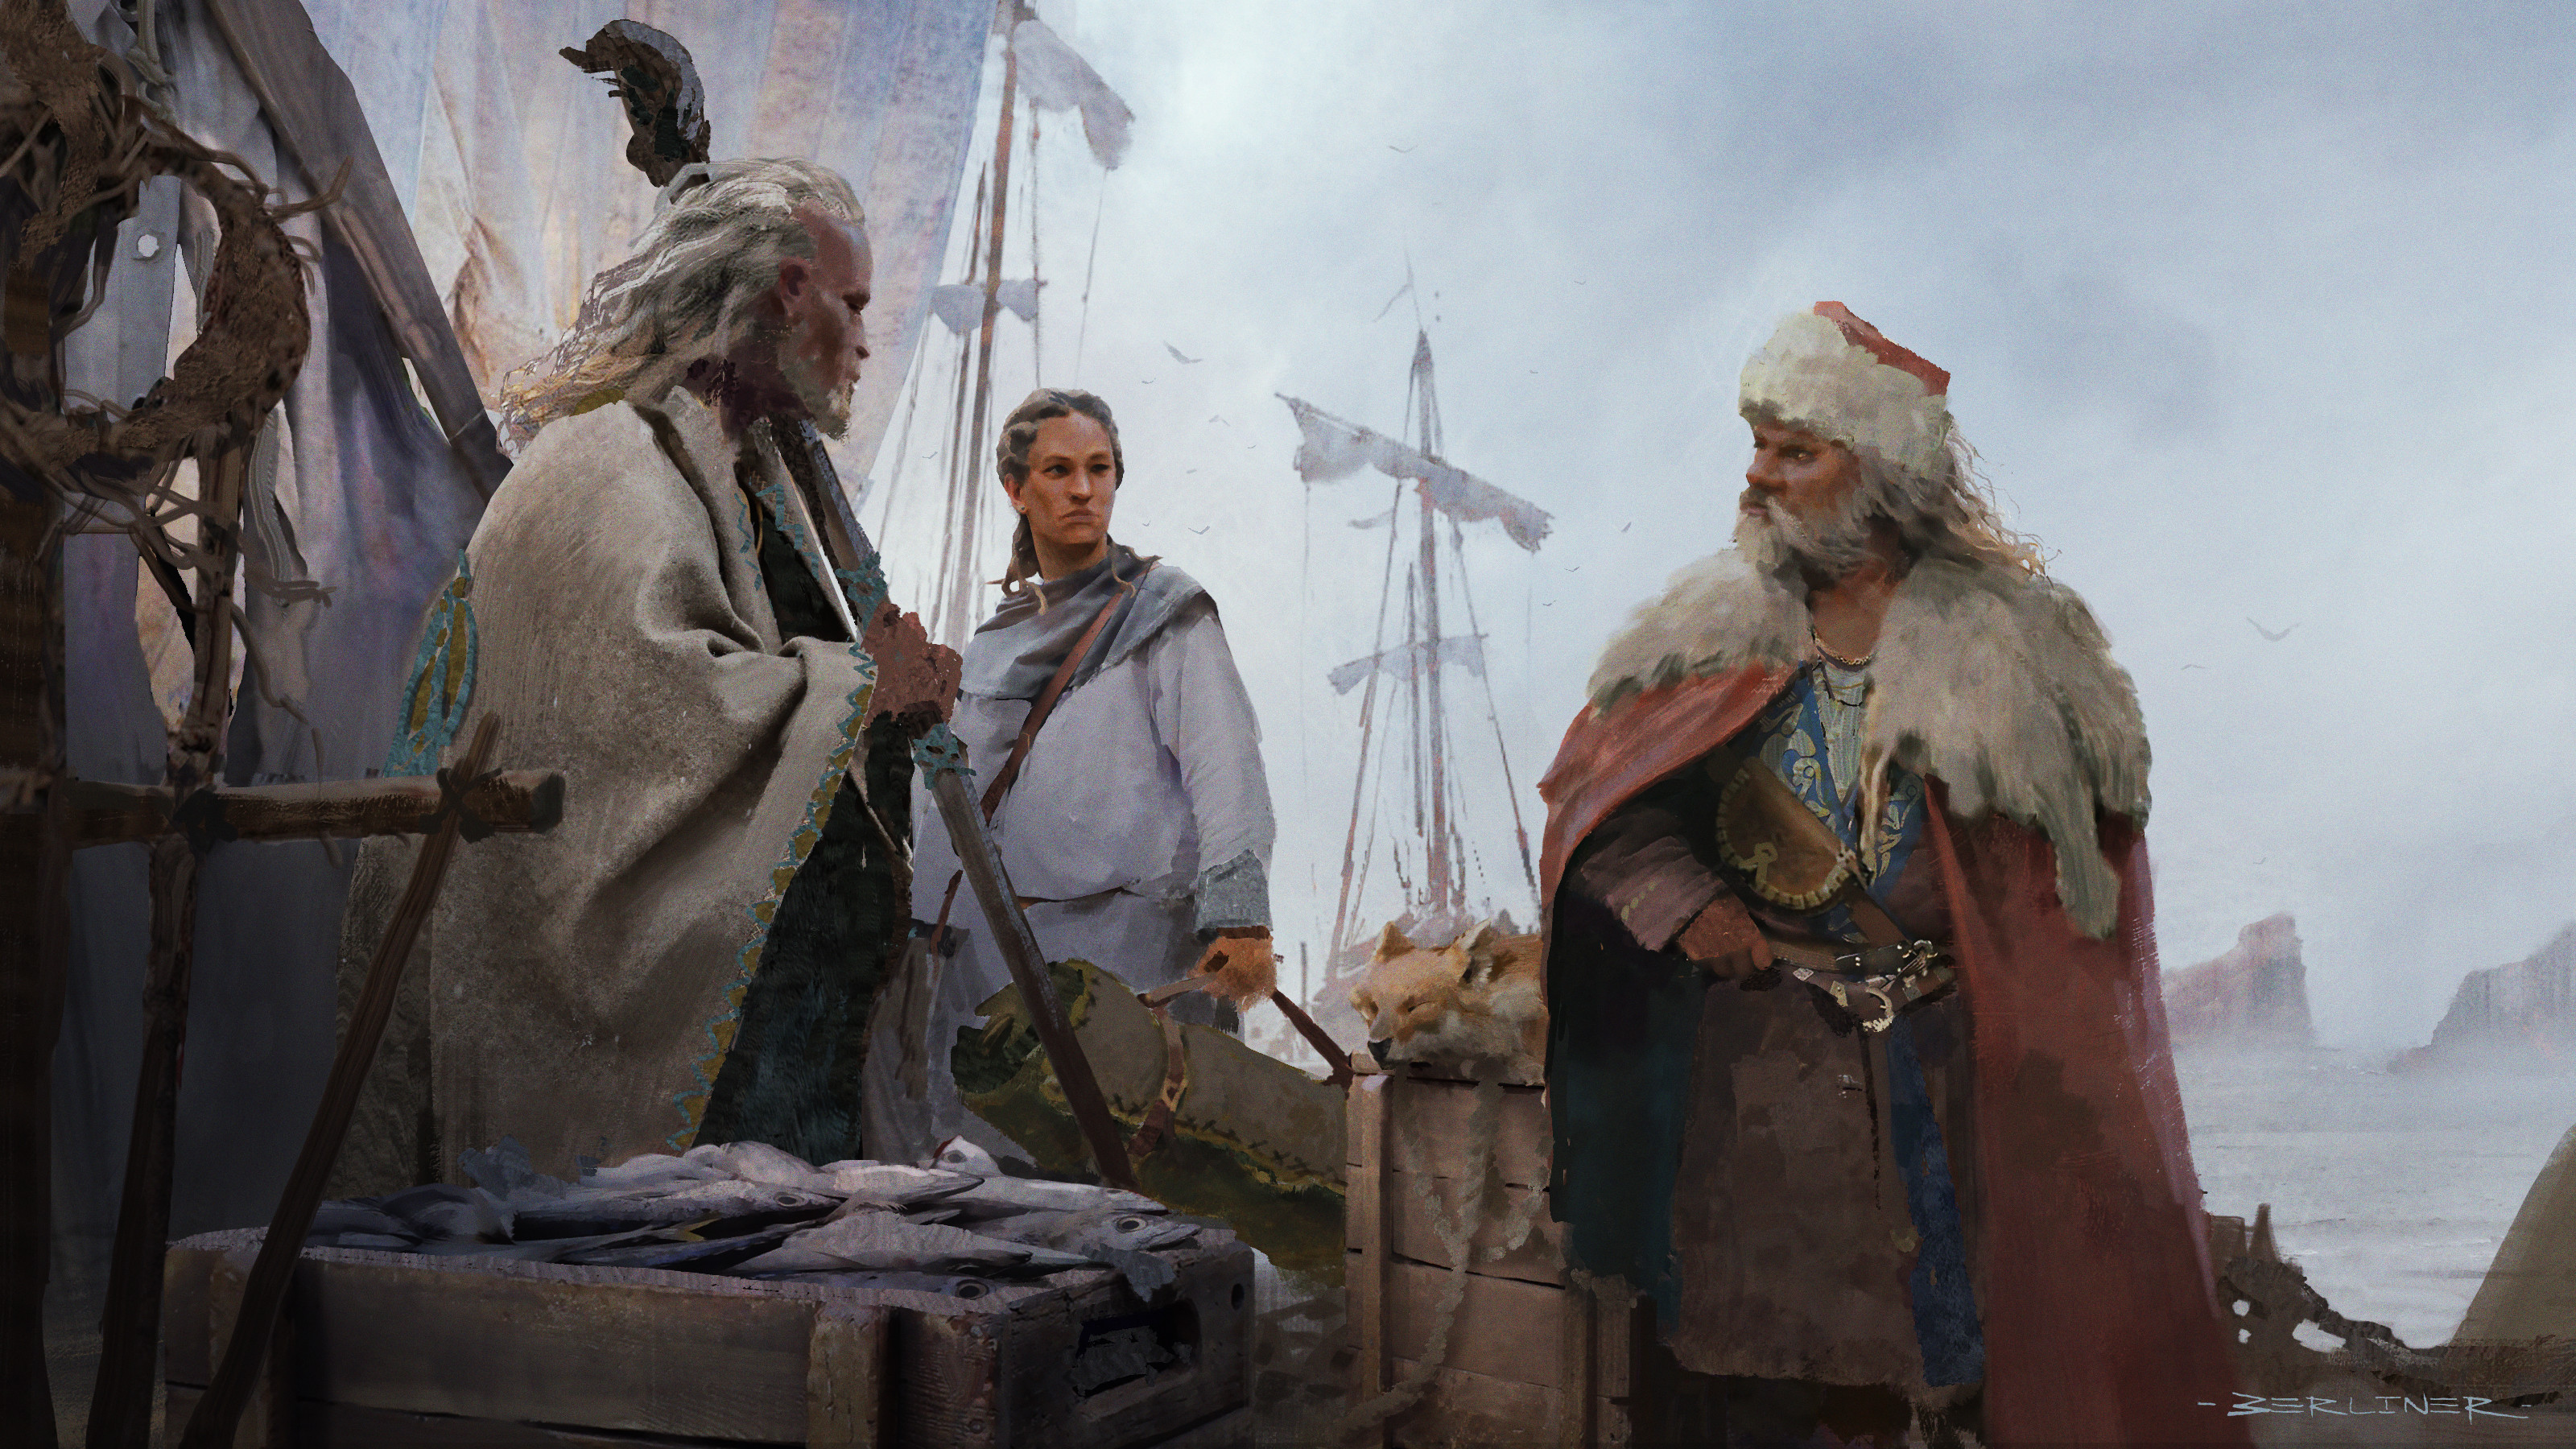 5. They went down to the docks, where the harbormaster came hastening to welcome Ogion and ask what service he might do. The mage told him and at once he named a ship bound for the Inmost Sea aboard which Ged might go as passenger.